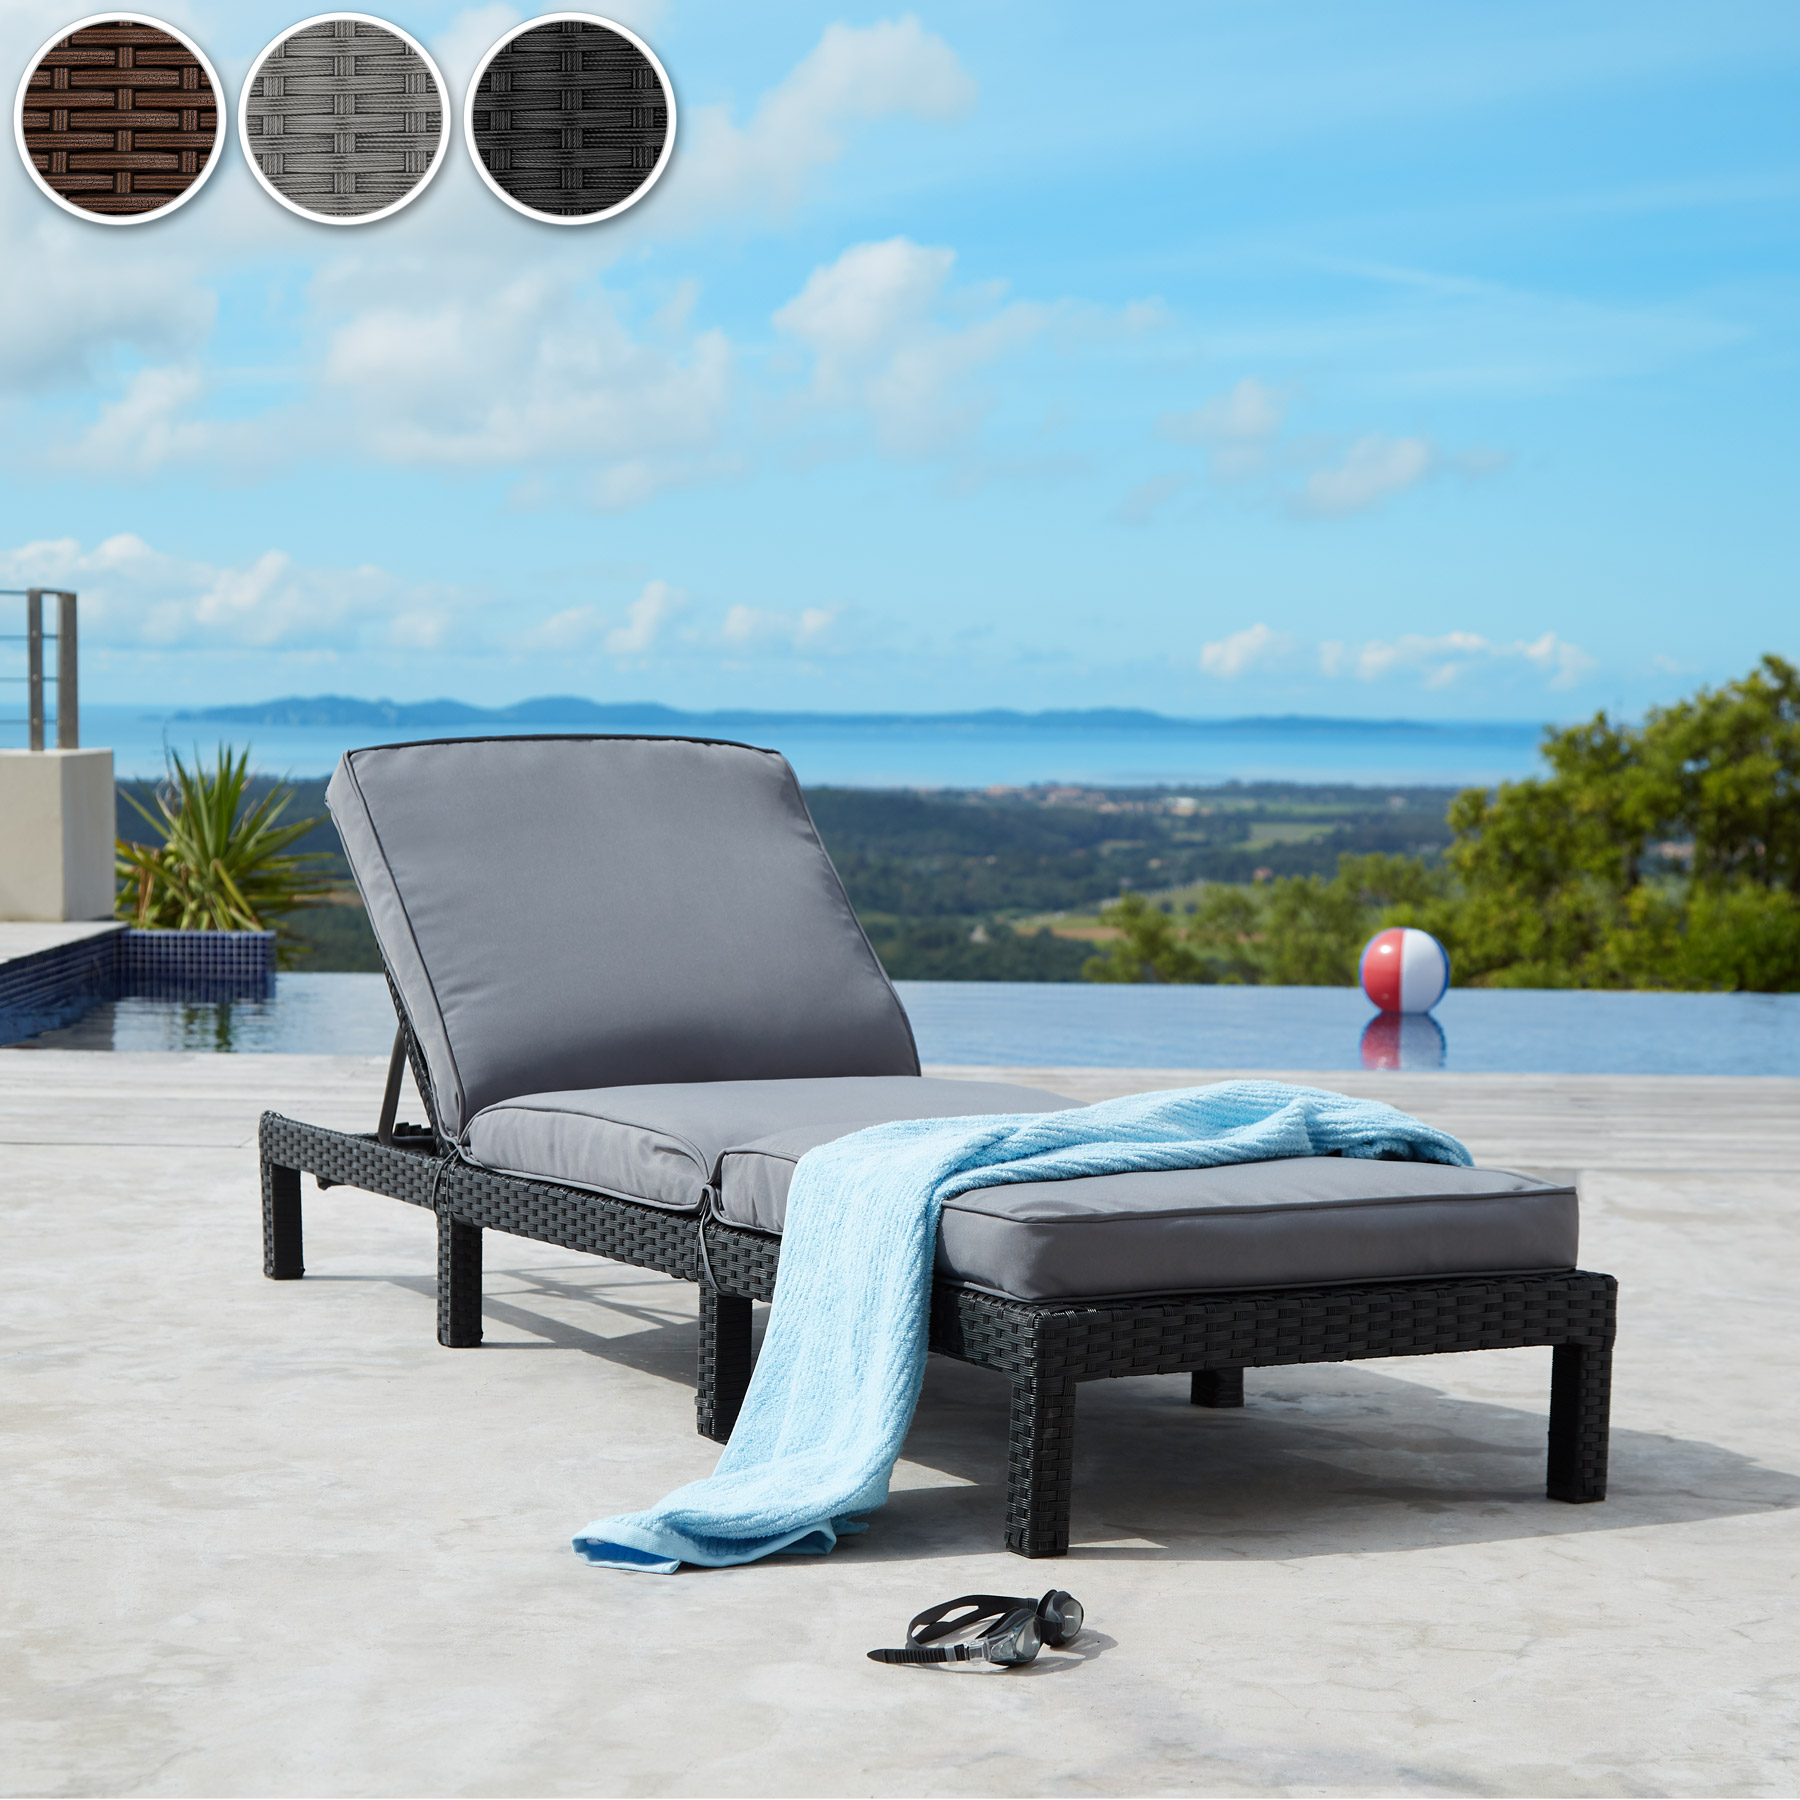 chaise longue bain de soleil meuble de jardin en poly rotin transat gris nouveau ebay. Black Bedroom Furniture Sets. Home Design Ideas